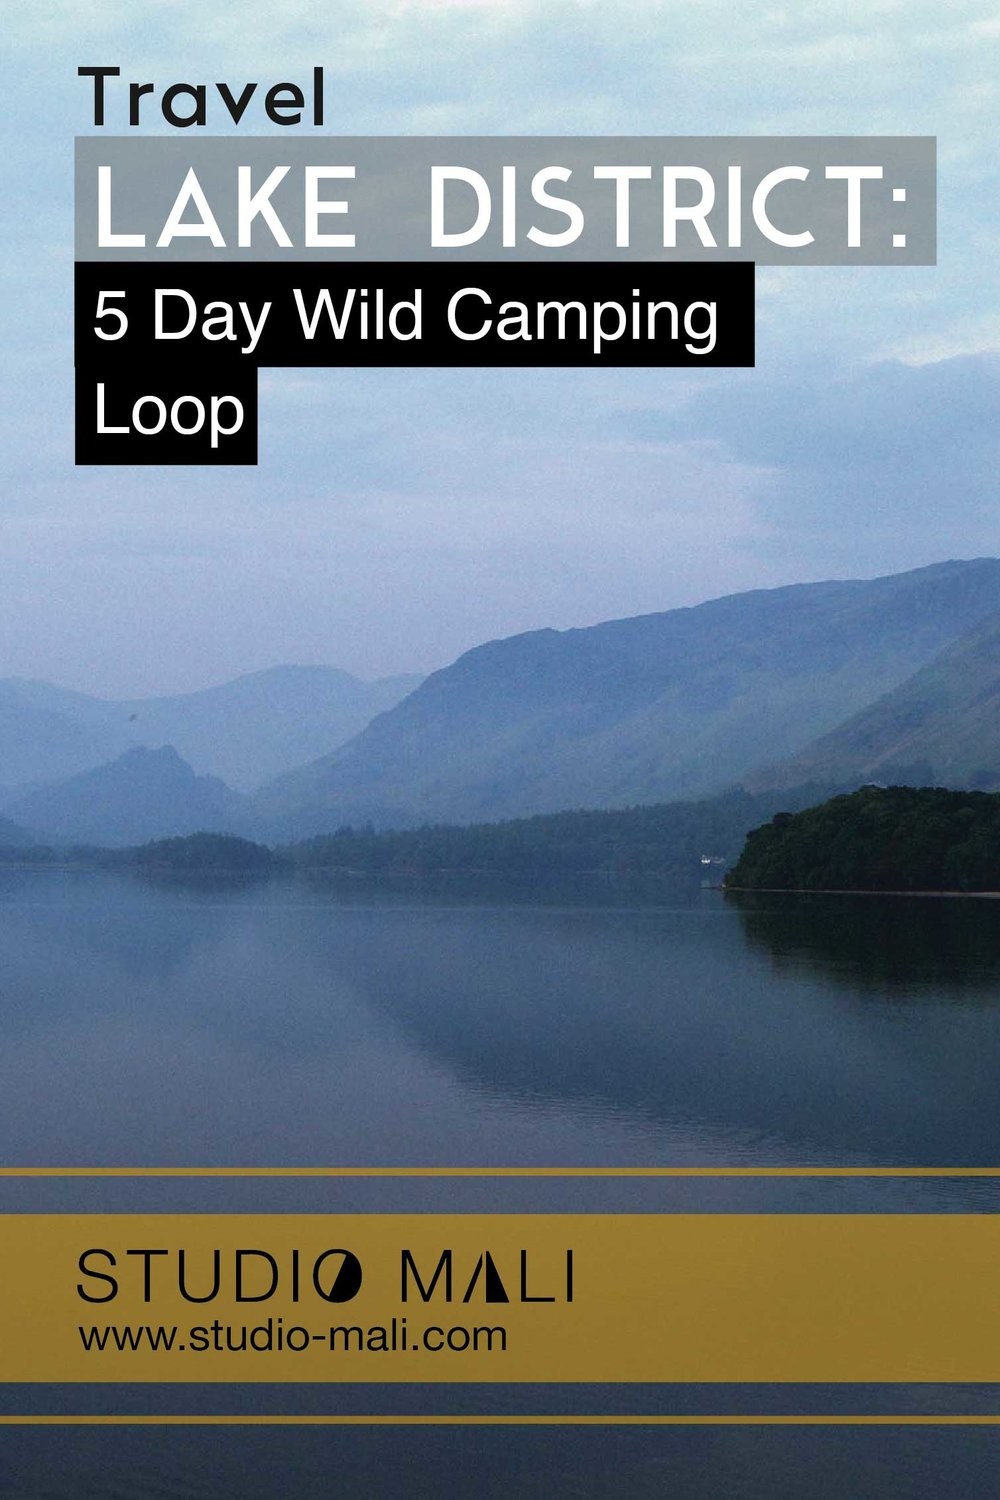 Travel - 5 Day Wild Camping Loop In The Lake District, By Studio Mali.jpg